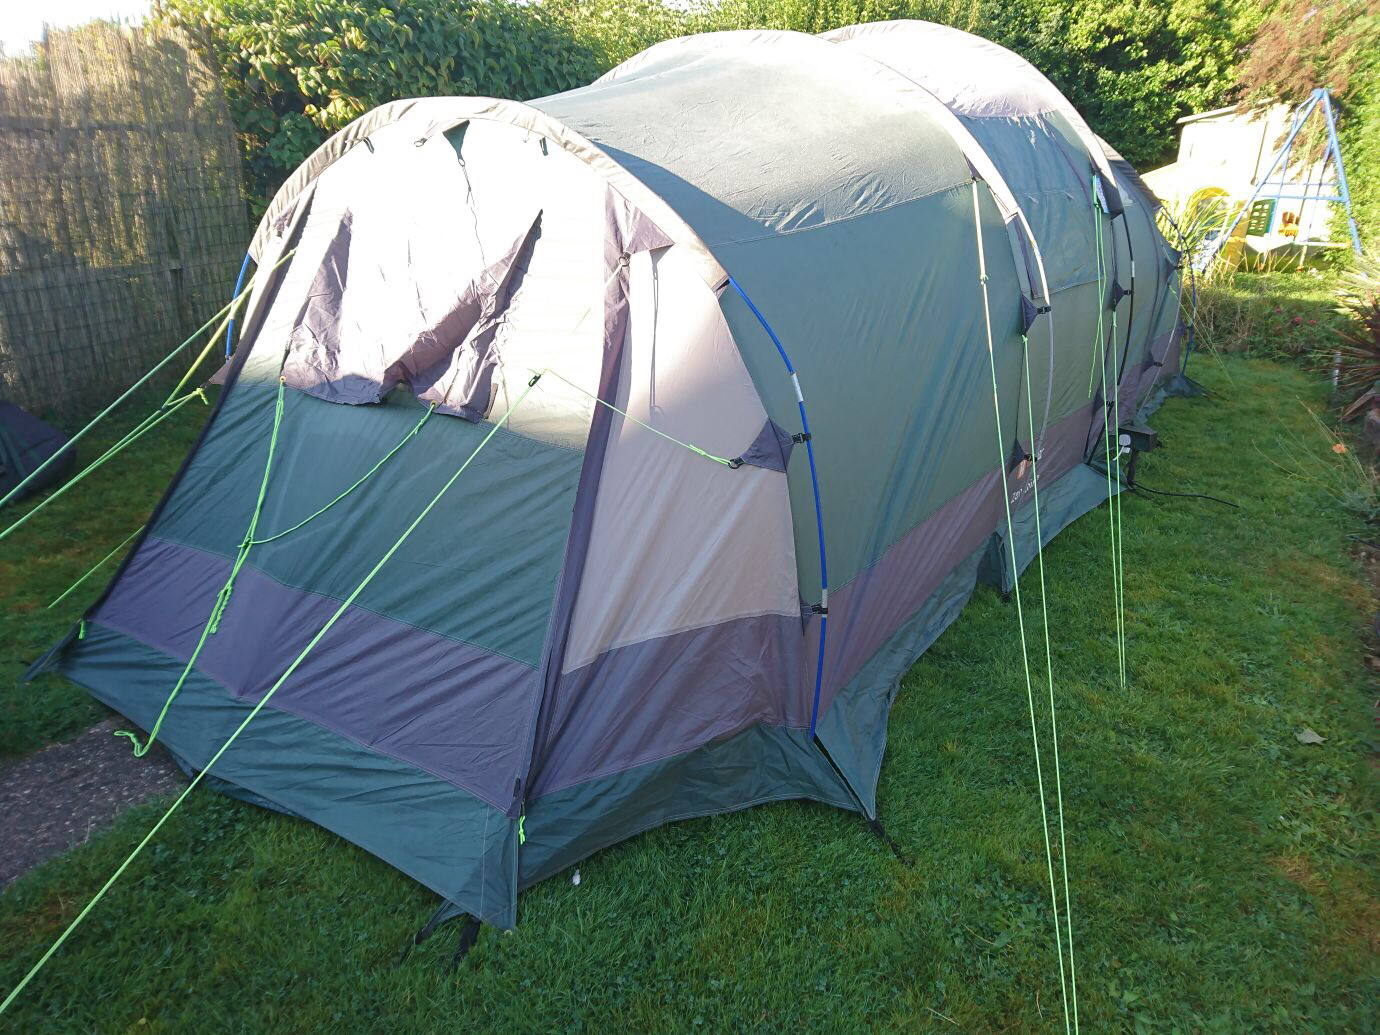 Higear 6 birth tent & zenobia 6 tent - Used Tents Buy and Sell in the UK and Ireland ...